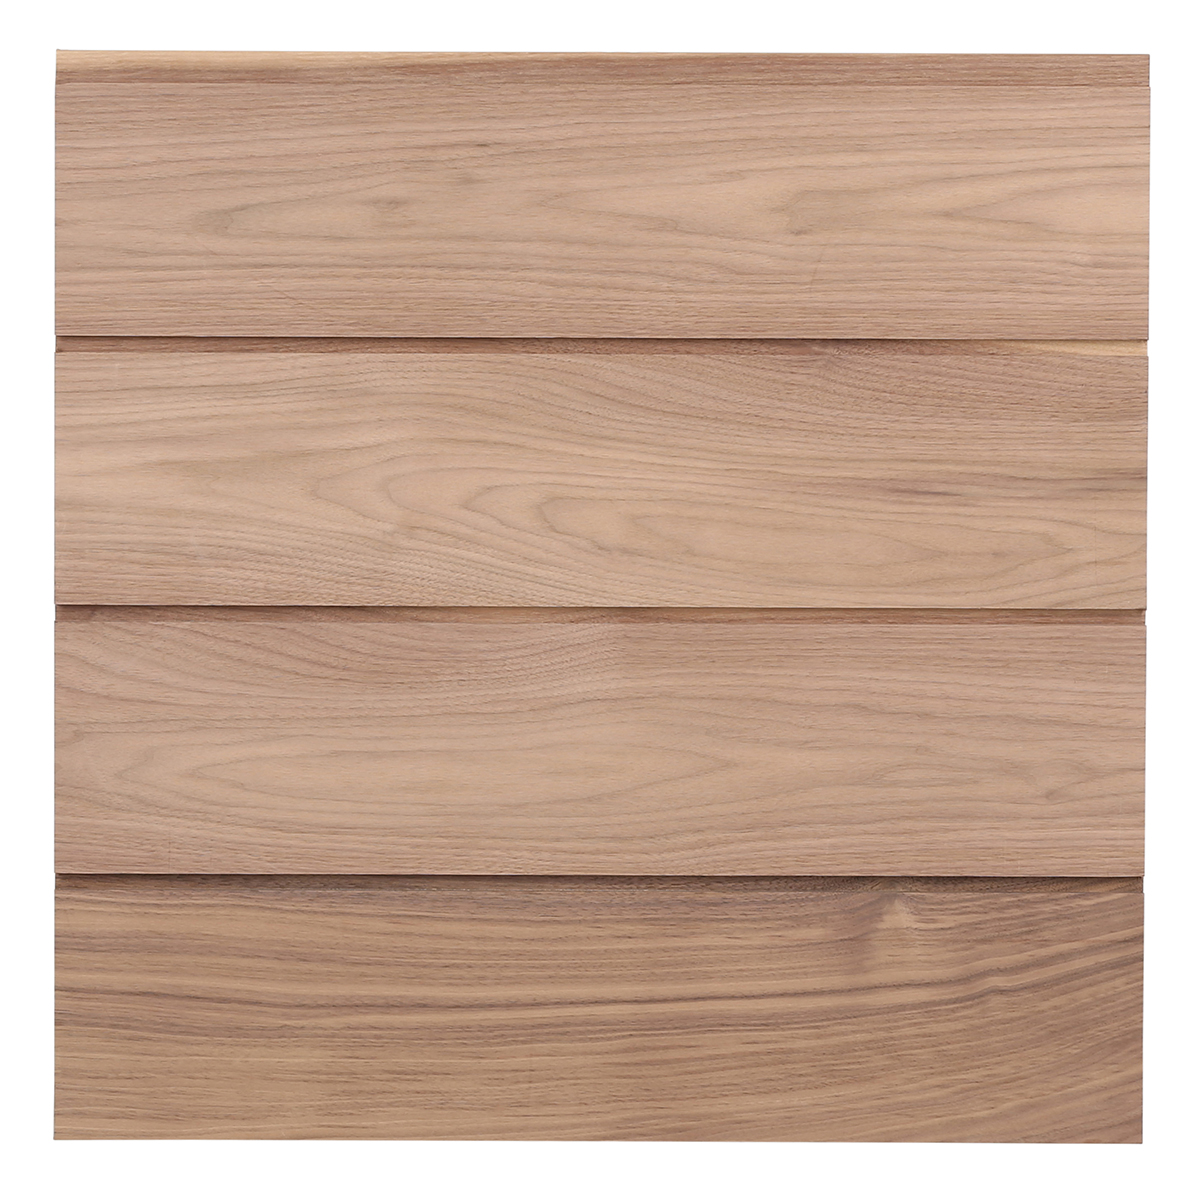 3 4 Quot X 6 Quot Smooth Face 6 3 4 Quot Overall Walnut Ship Lap